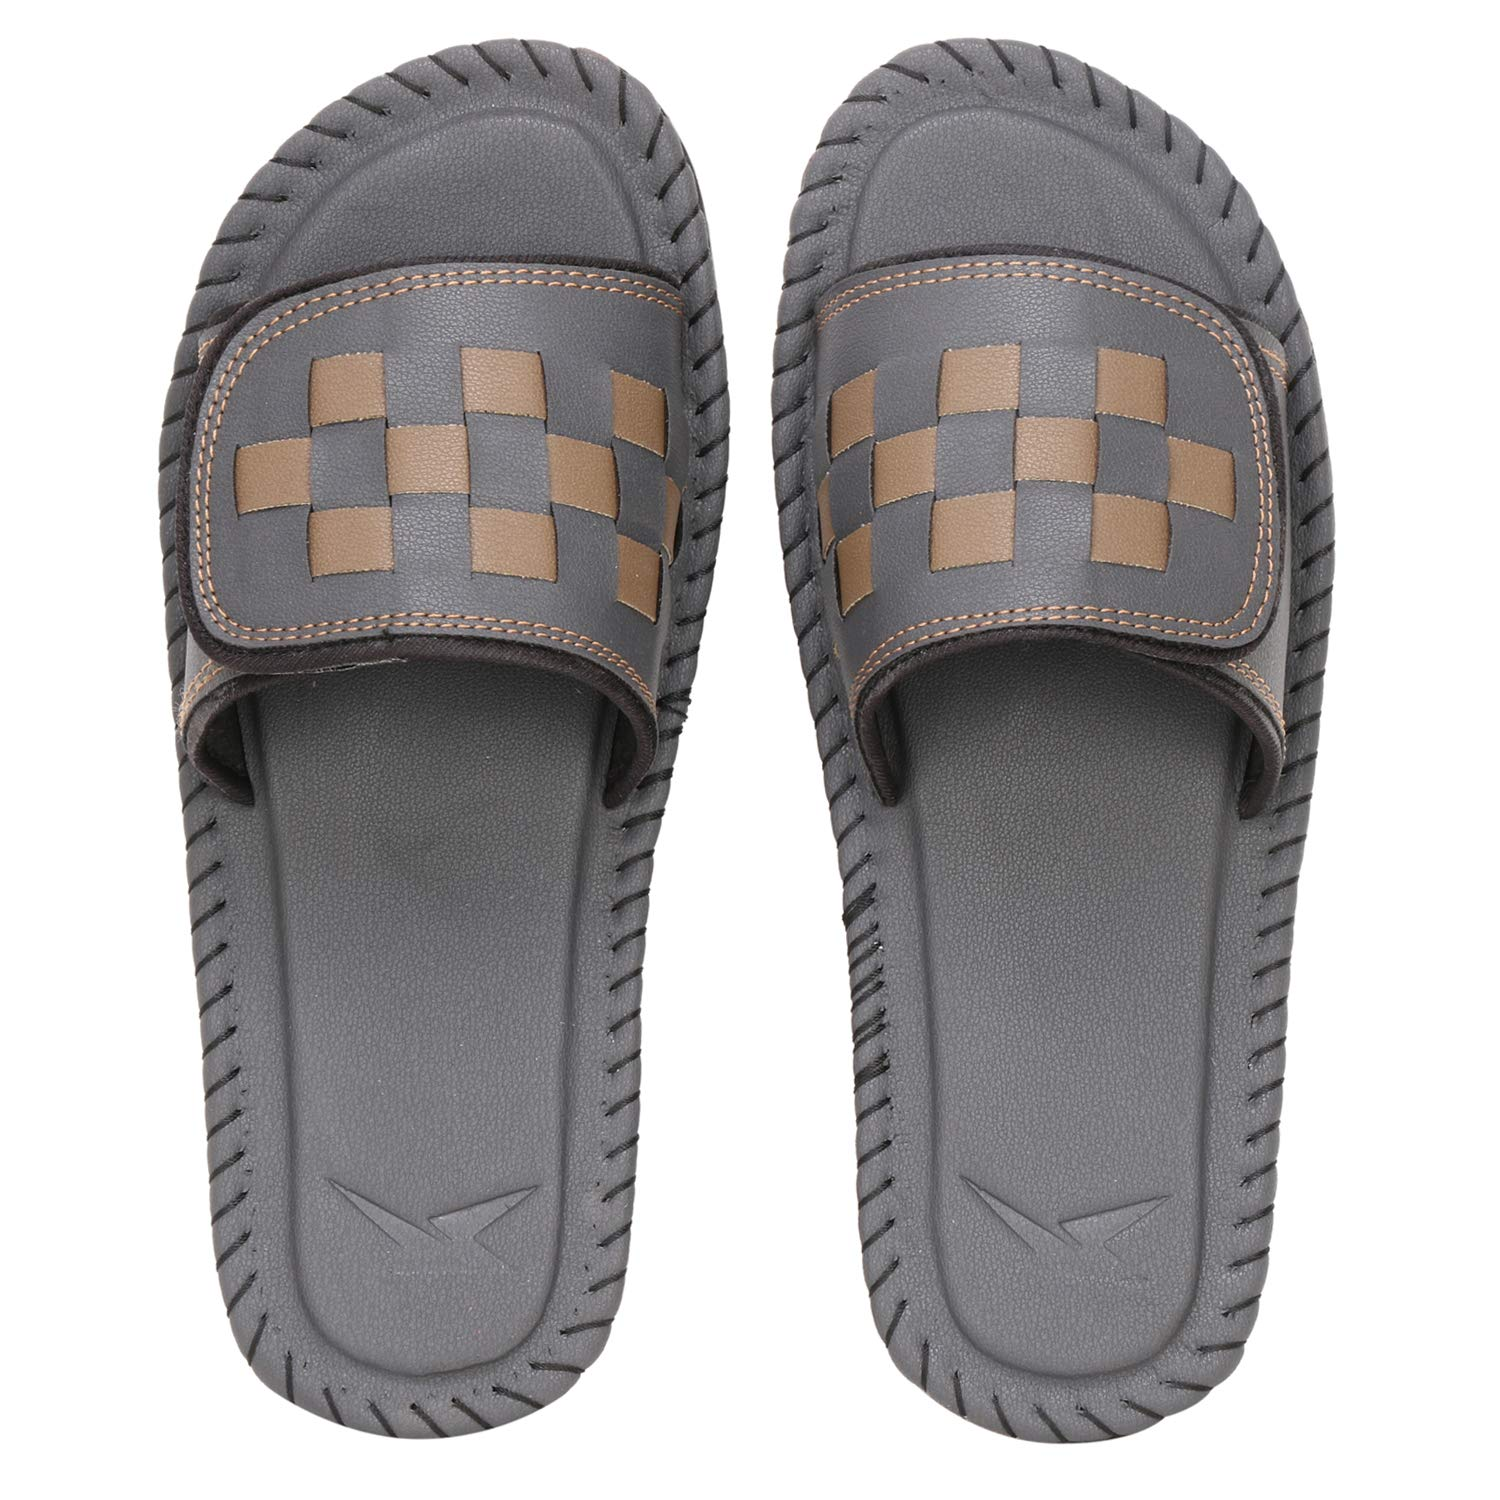 92d86486212fdd Kraasa Slippers  Buy Online at Low Prices in India - Amazon.in